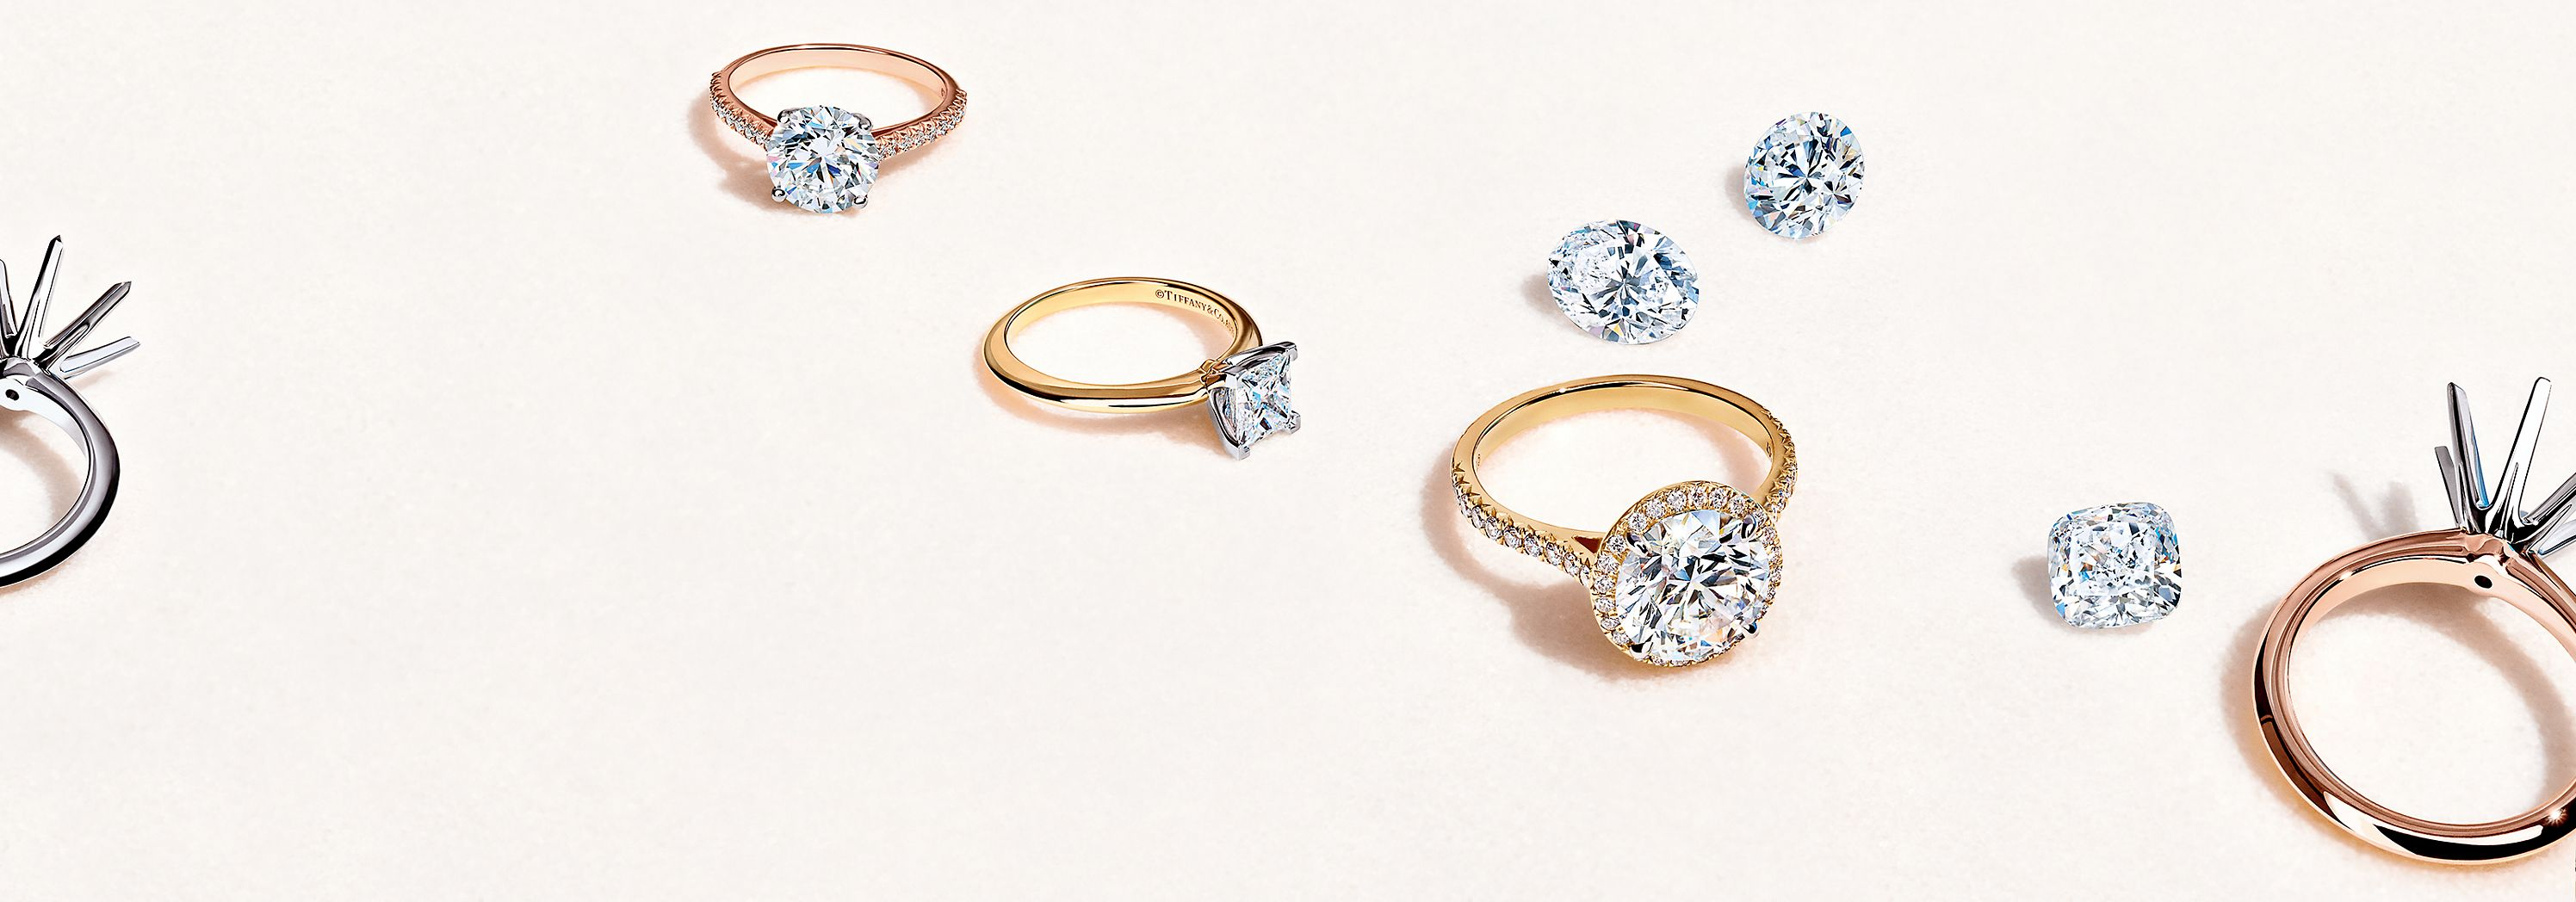 Learn About Engagement Ring Styles & Settings